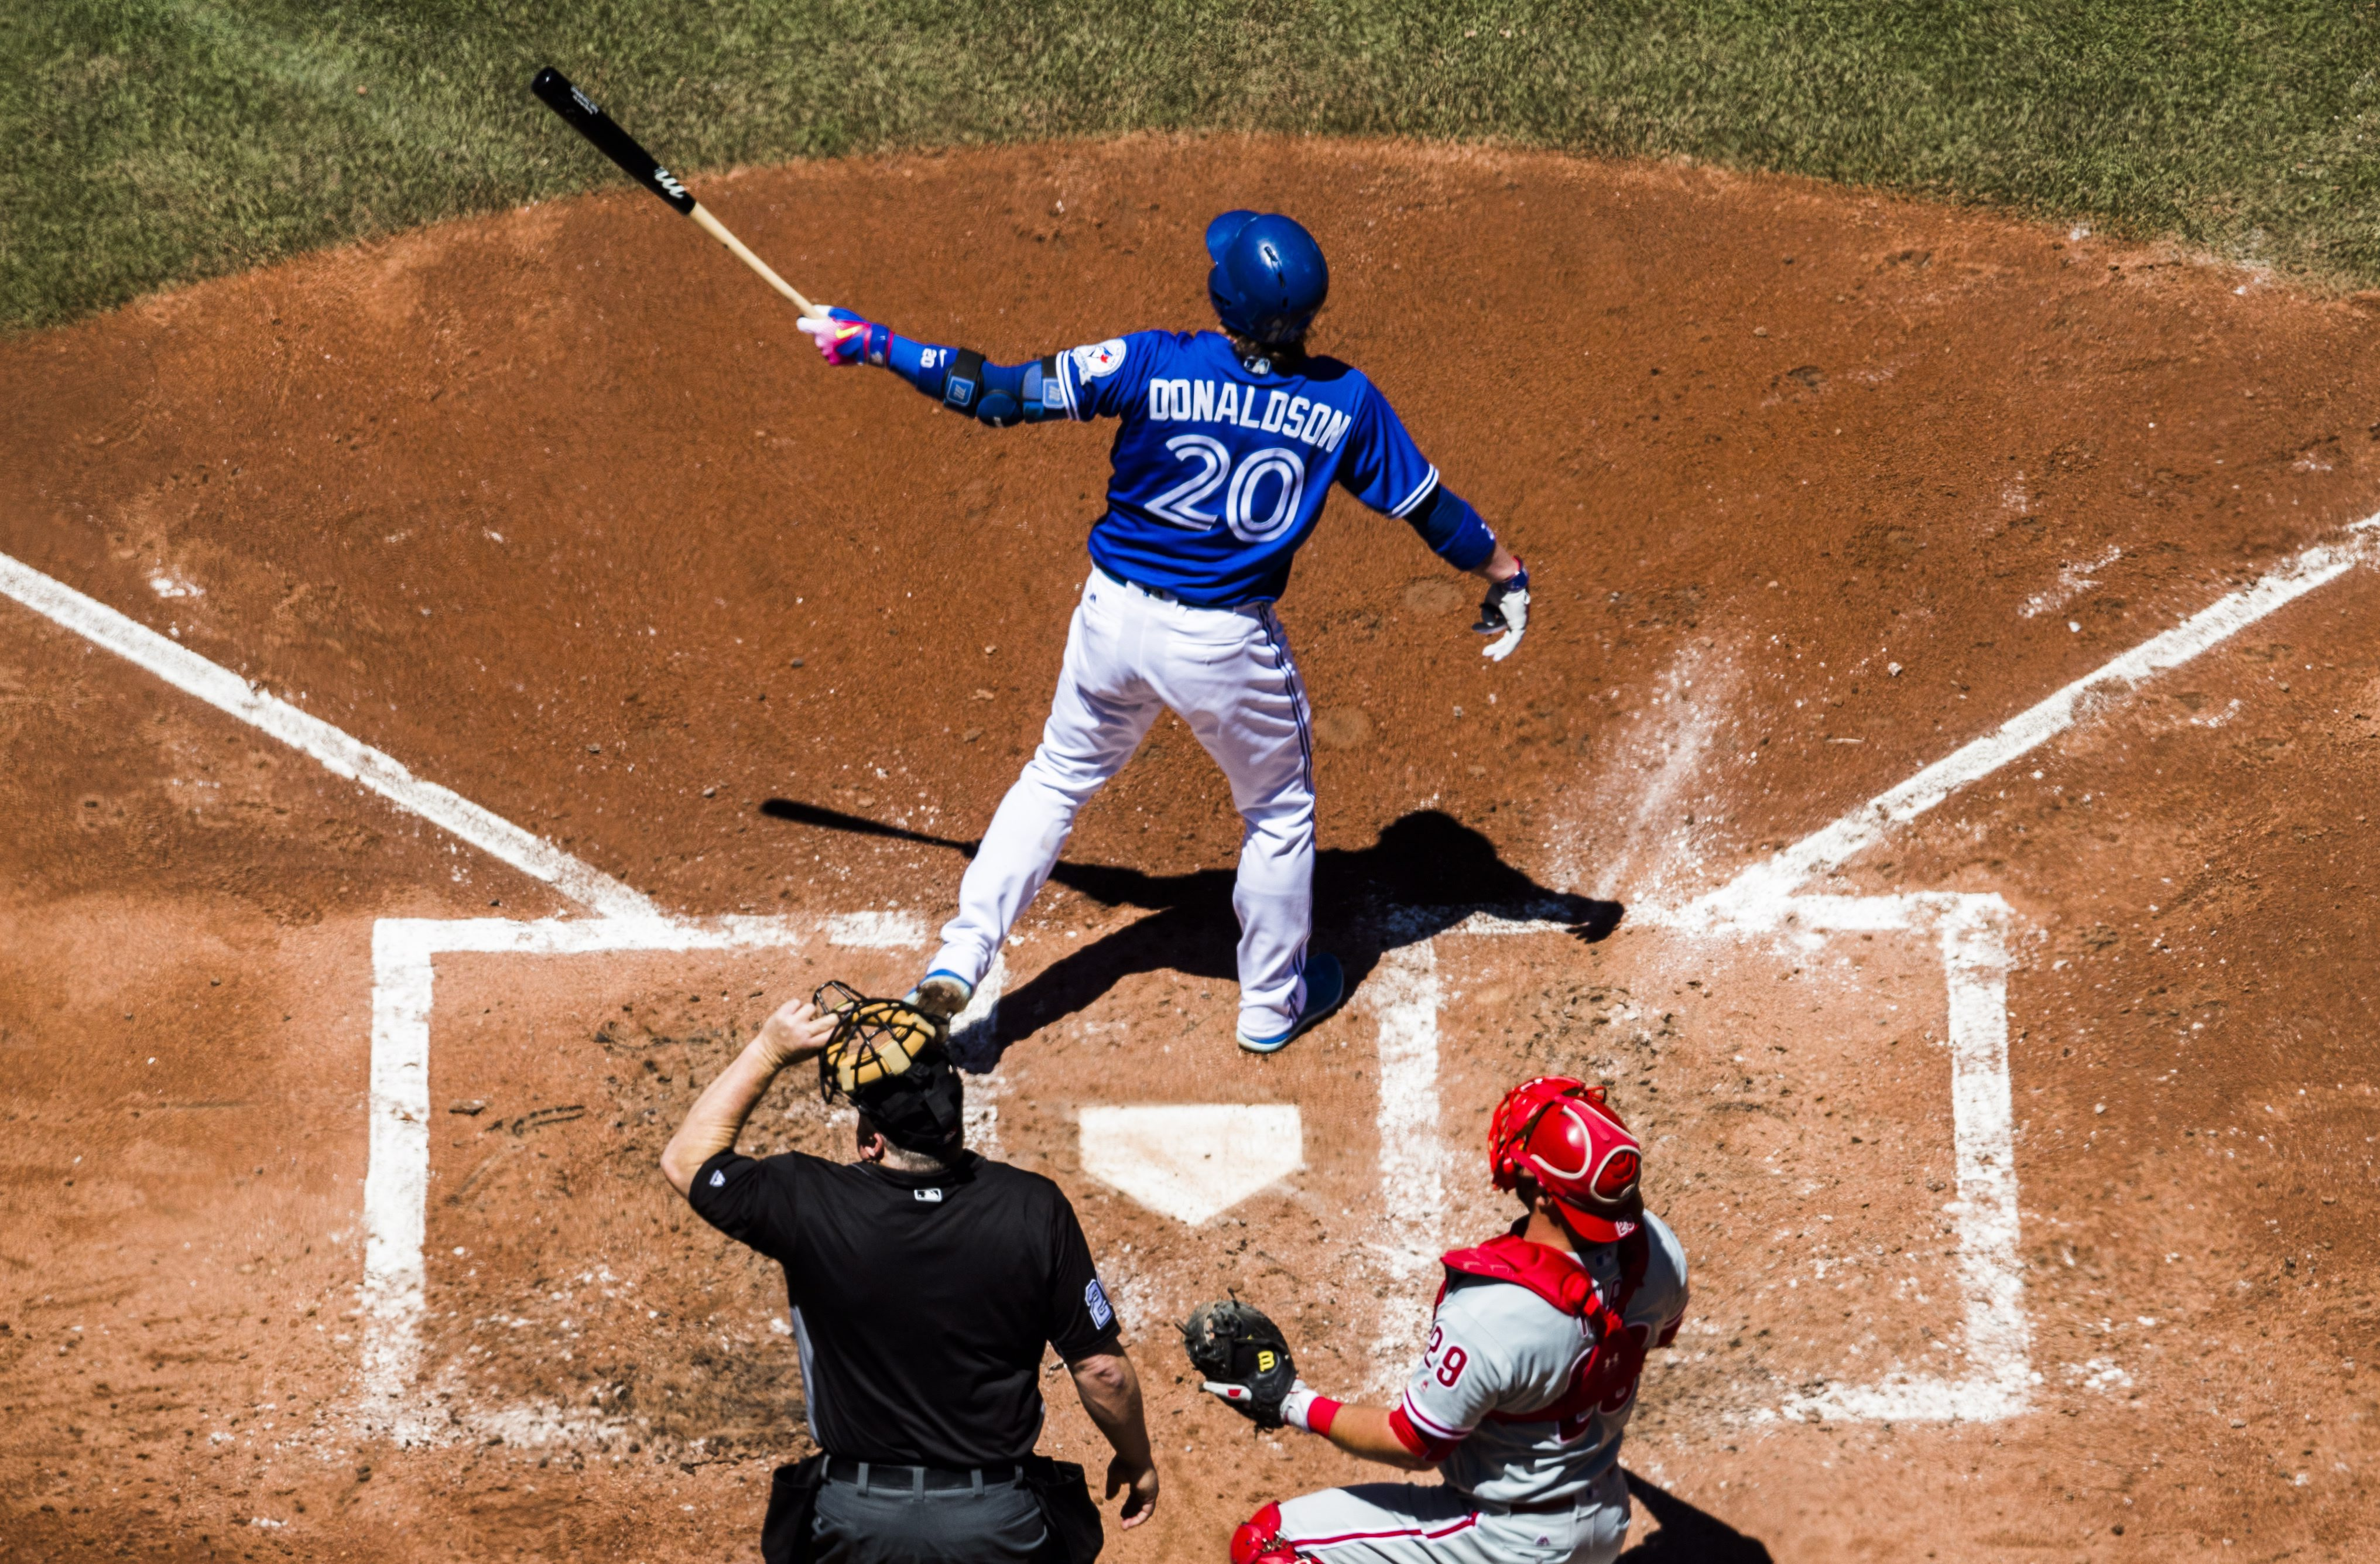 Toronto Blue Jays' Josh Donaldson hits a grand slam home run as Philadelphia Phillies catcher Cameron Rupp watches during the third inning of an interleague baseball action in Toronto, Tuesday, June 14, 2016. (Mark Blinch/The Canadian Press via AP)